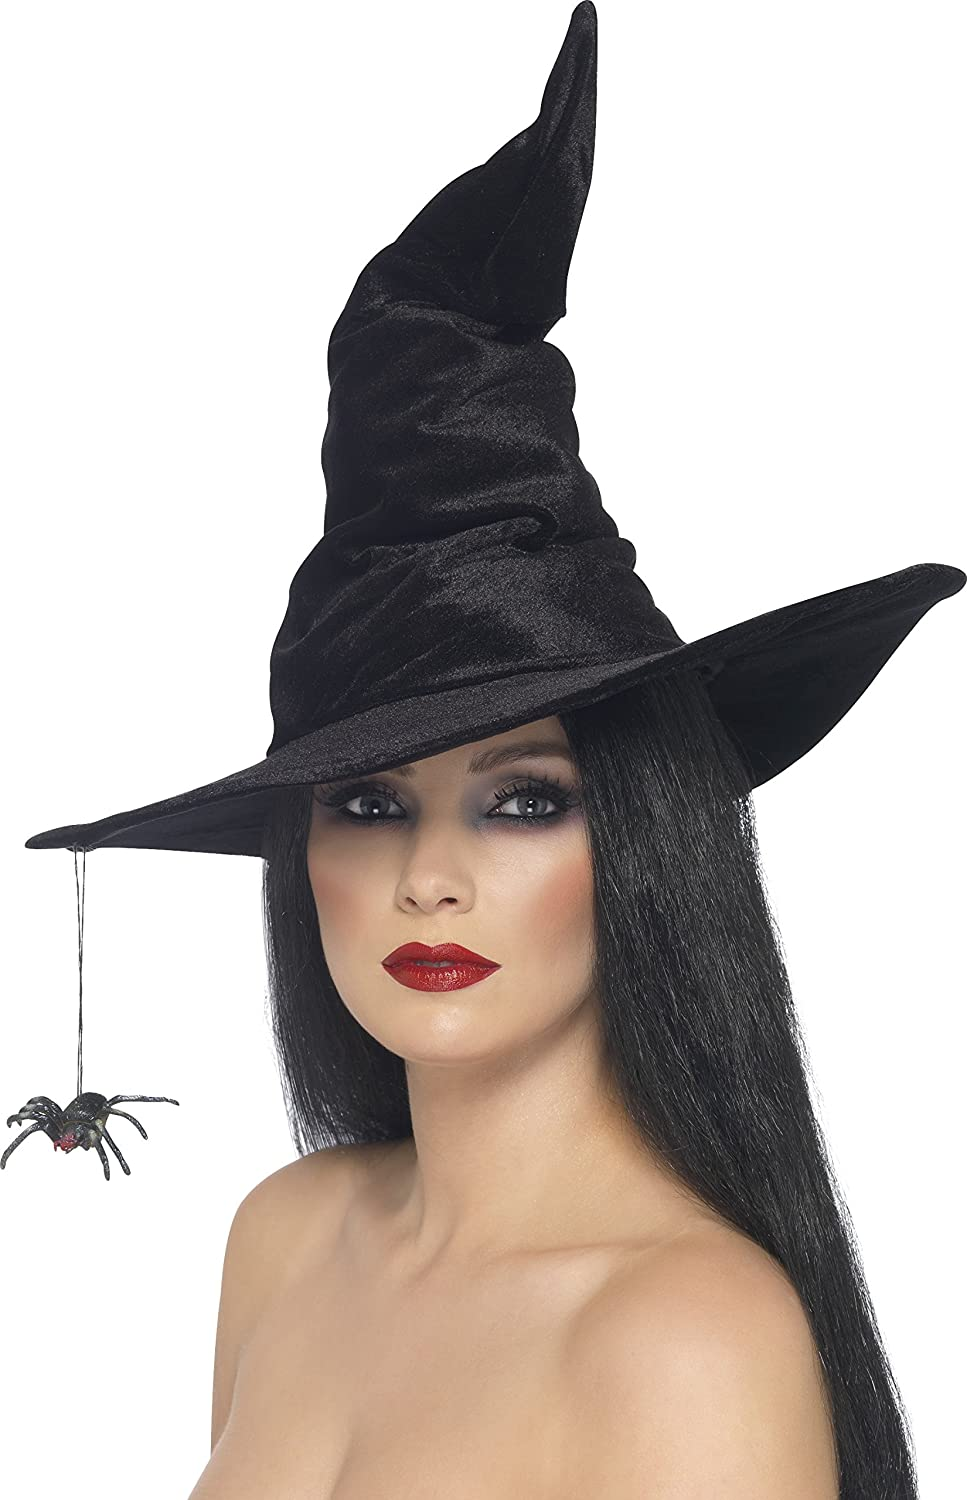 Smiffys Witch Hat Costume Accessory,Black,One Size RH Smith & Sons 24146 B003YLK7SW